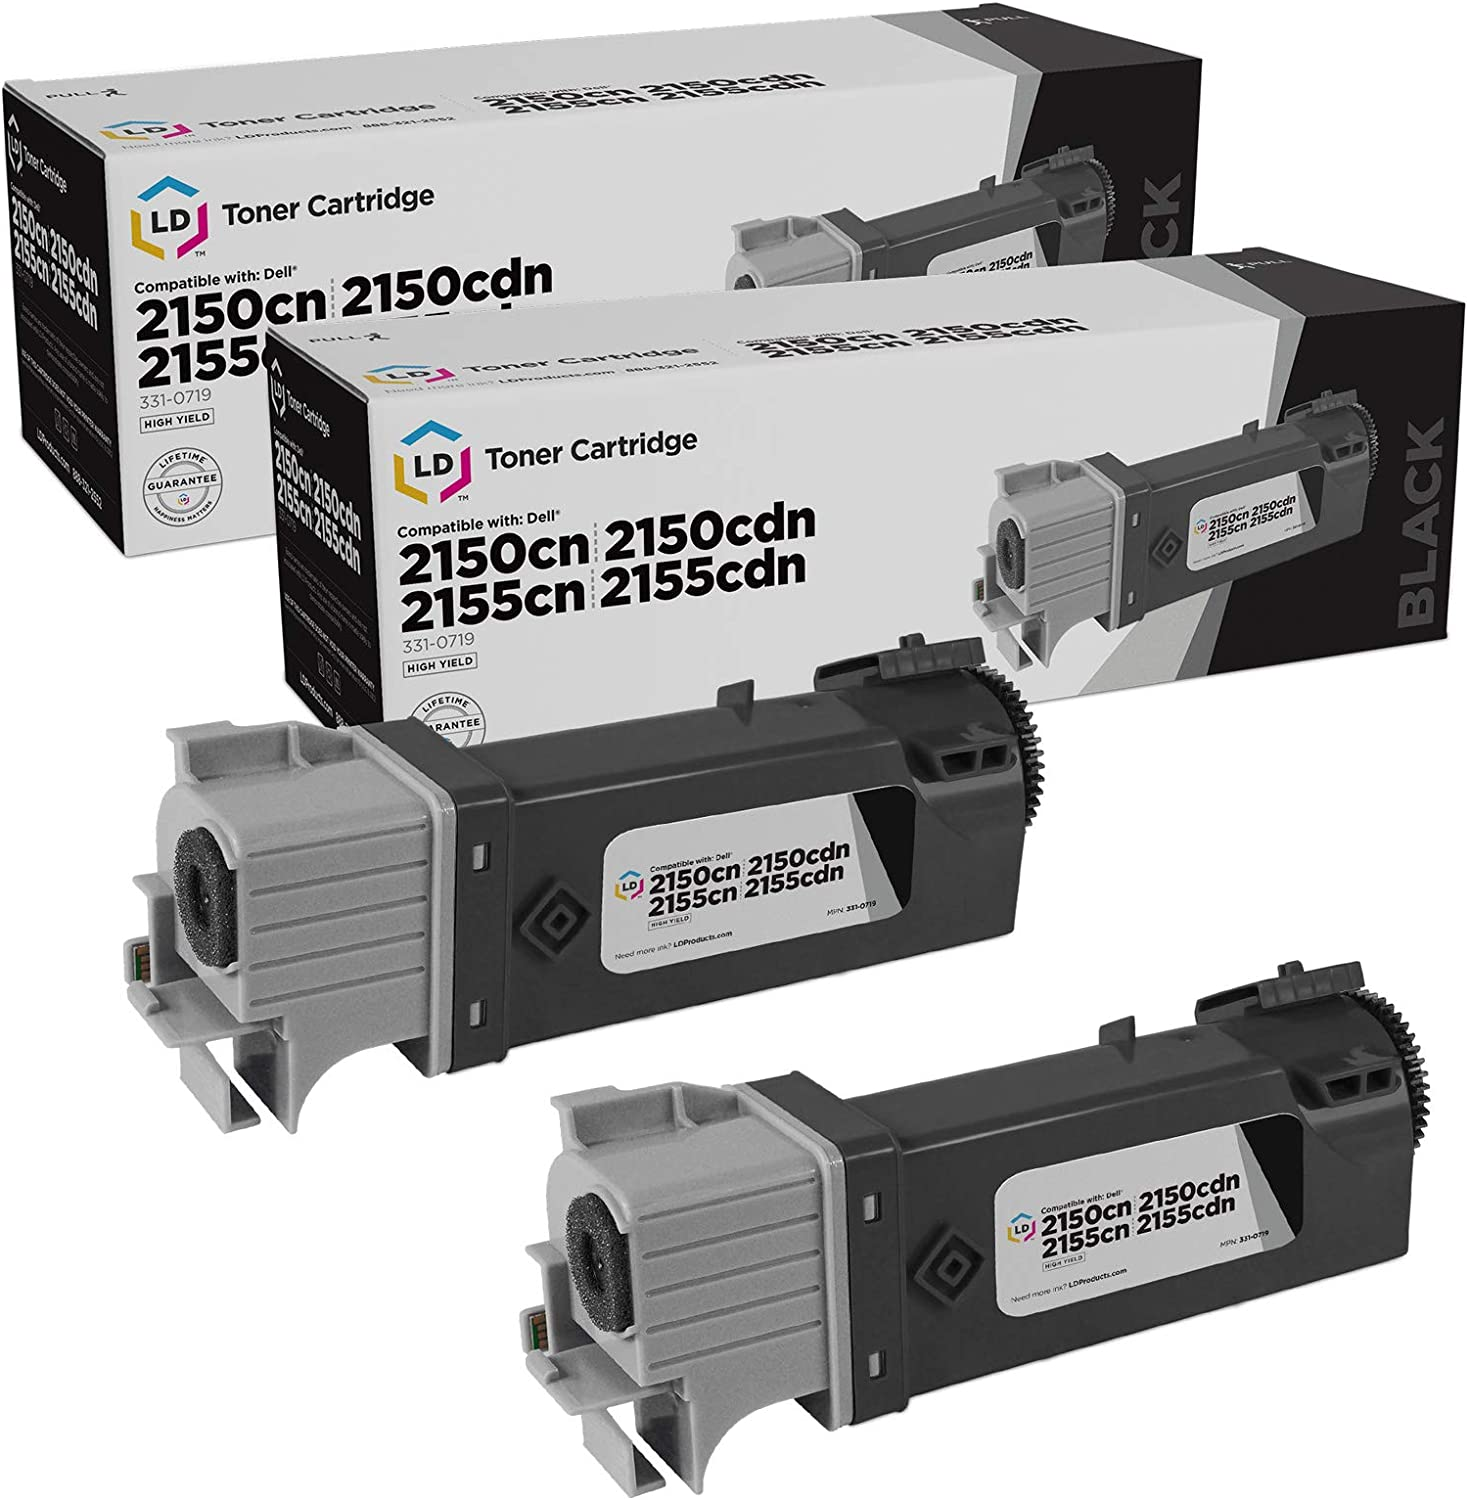 LD Compatible Toner Cartridge Replacements for Dell 331-0719 MY5TJ High Yield (Black, 2-Pack)